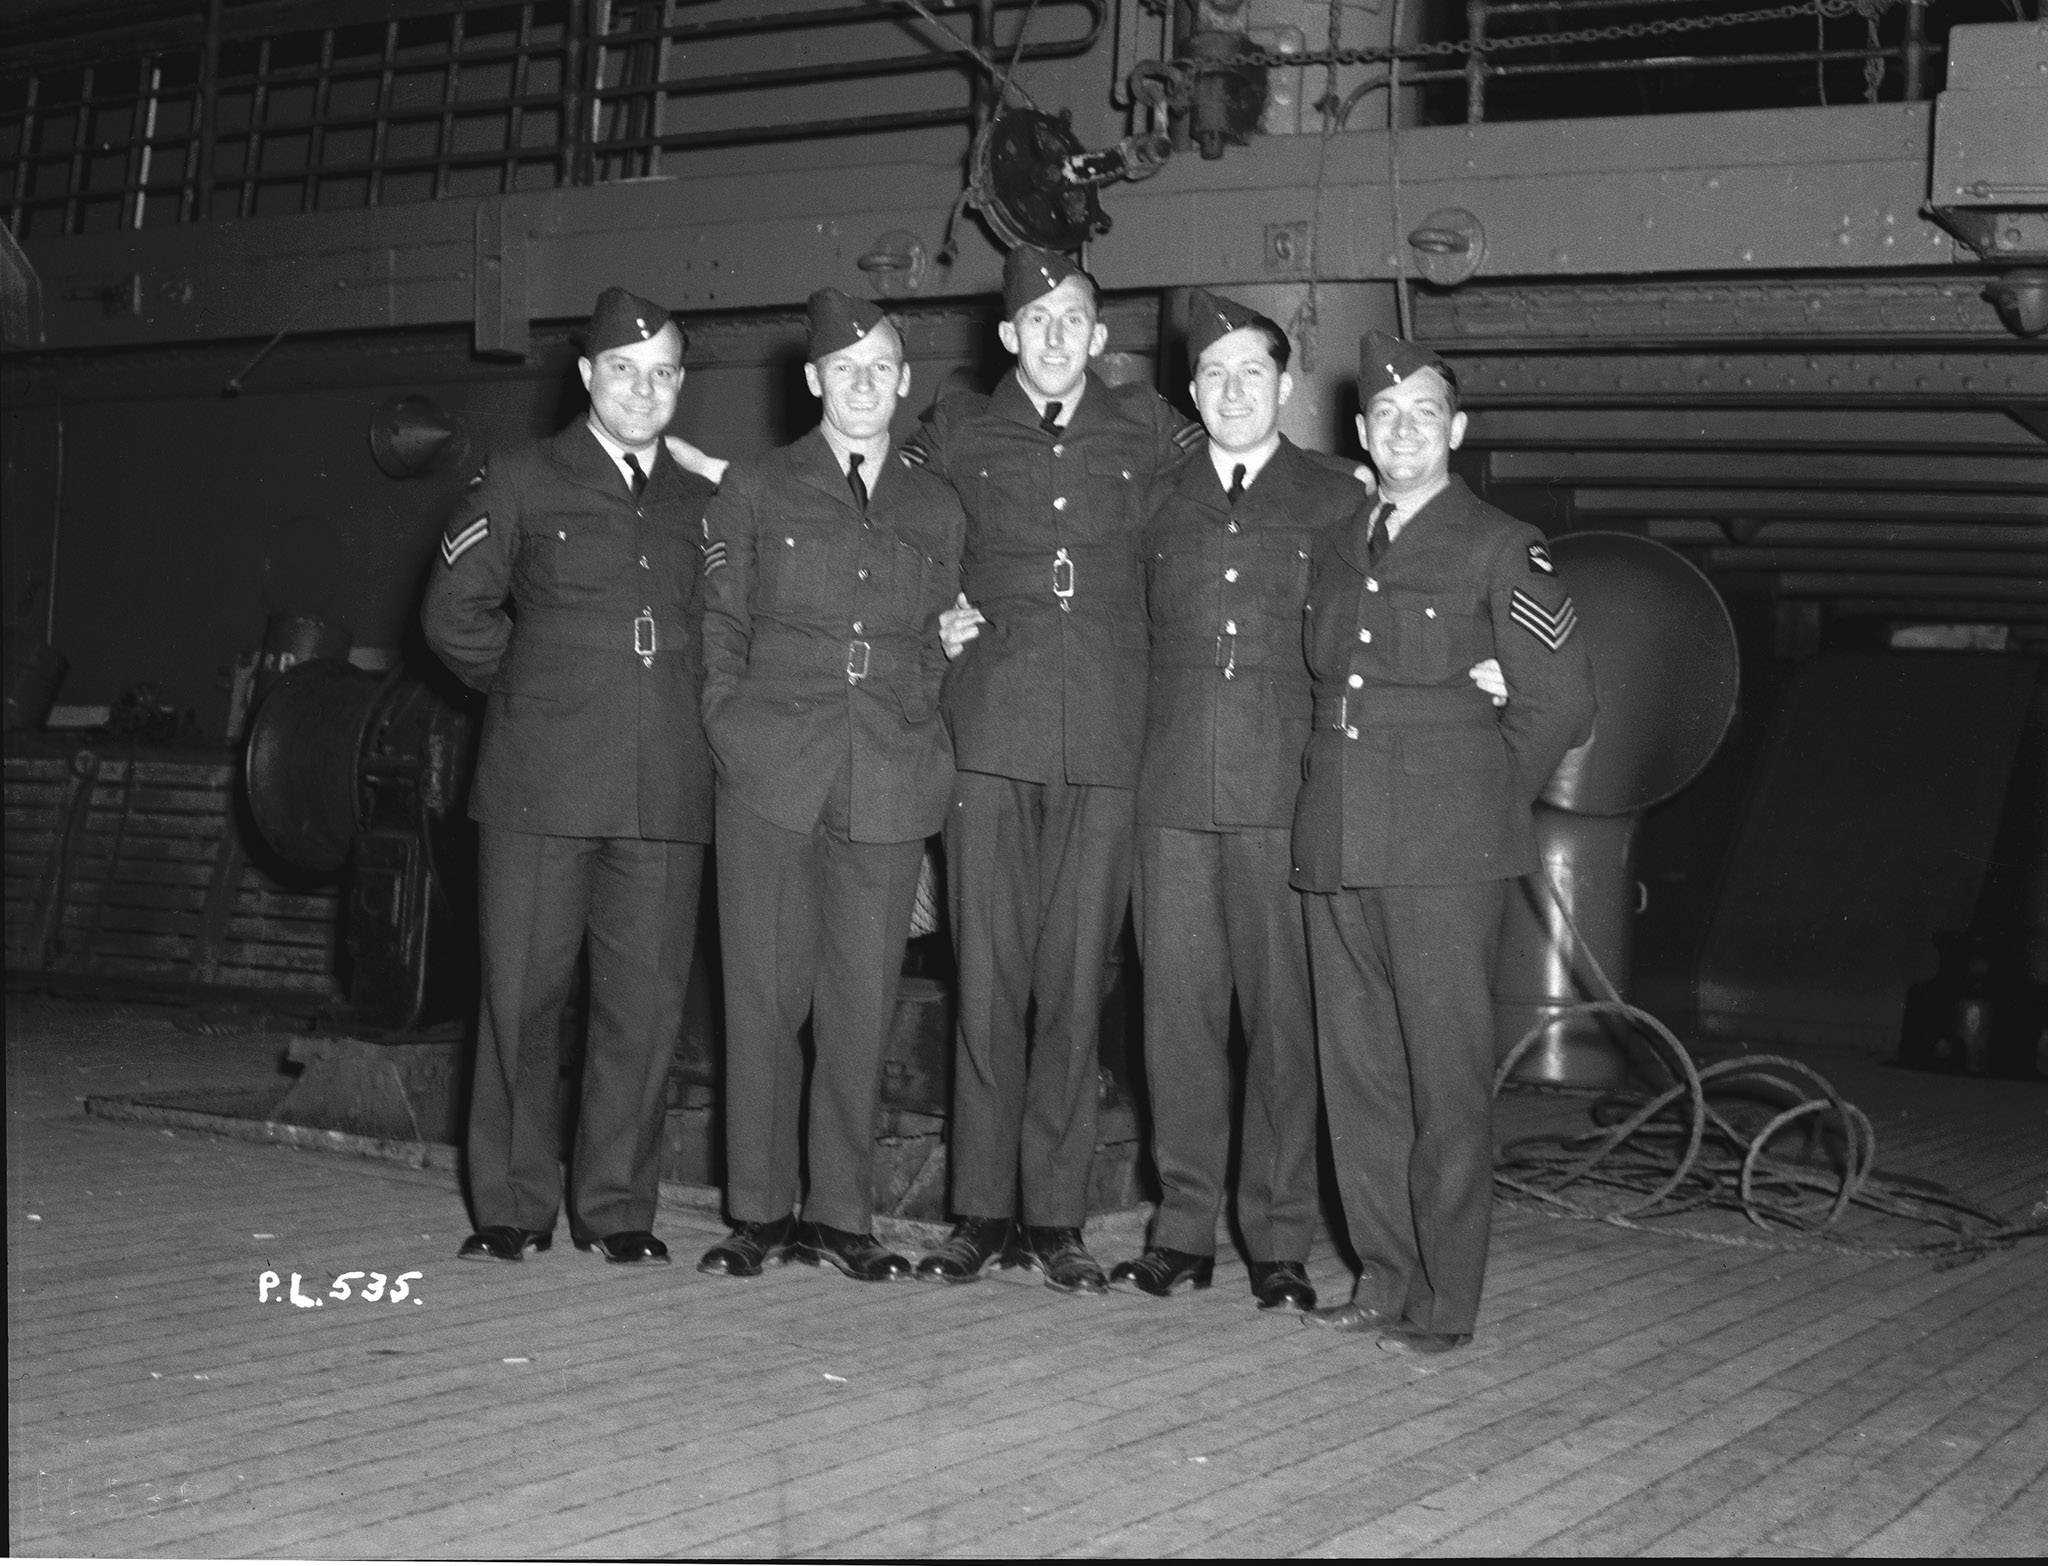 "The original caption of this photo reads ""Several non-commissioned officers of the RCAF's No. 1 (Fighter) Squadron adopted a member of the overseas headquarters staff before departing for active service overseas. The group includes one of the oldest and one of the youngest members of the unit: Sergeant John Burdes having been with this squadron for nine years, while Flight Sergeant Saunders was transferred from another squadron less than 24 hours before sailing. In this photo, taken on June 8, 1940, are (left to right) Corporal A.L.P. Gagnon of St. Boniface, Manitoba; Flight Sergeant L.G. Saunders of Ottawa, Ontario; Sergeant John R. Burdes of New Westminster, British Columbia; Sergeant-major A.C. Wilson of Ottawa, Ontario, who was sailing to join the Overseas Headquarters of the RCAF in England; and Sergeant F. Worrell of Montreal, Quebec."" PHOTO: DND Archives, PL-535"